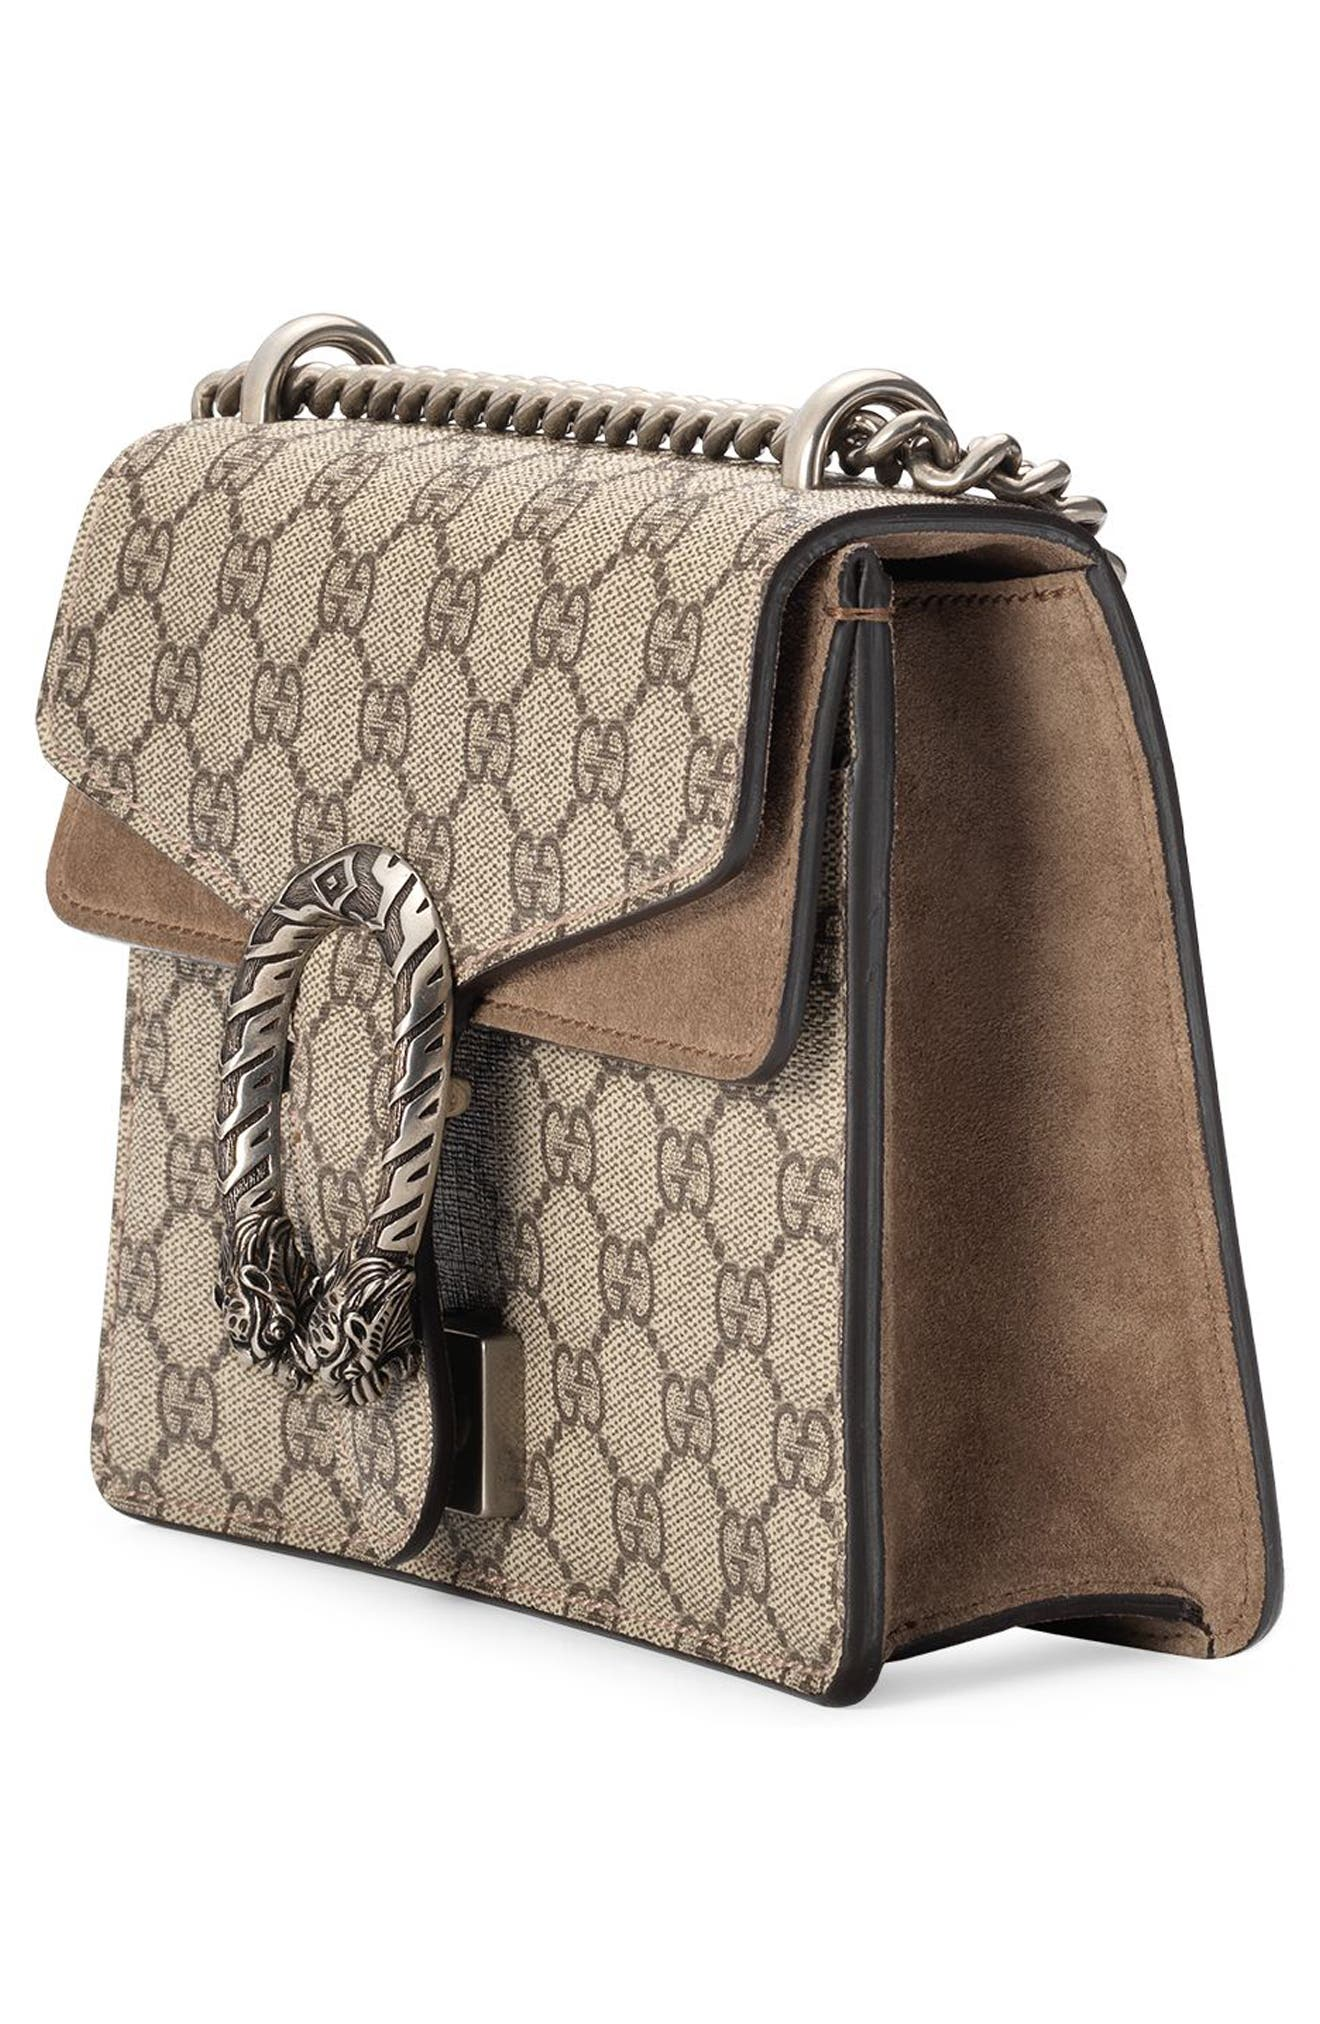 GUCCI,                             Mini Dionysus GG Supreme Shoulder Bag,                             Alternate thumbnail 5, color,                             BEIGE EBONY/ TAUPE